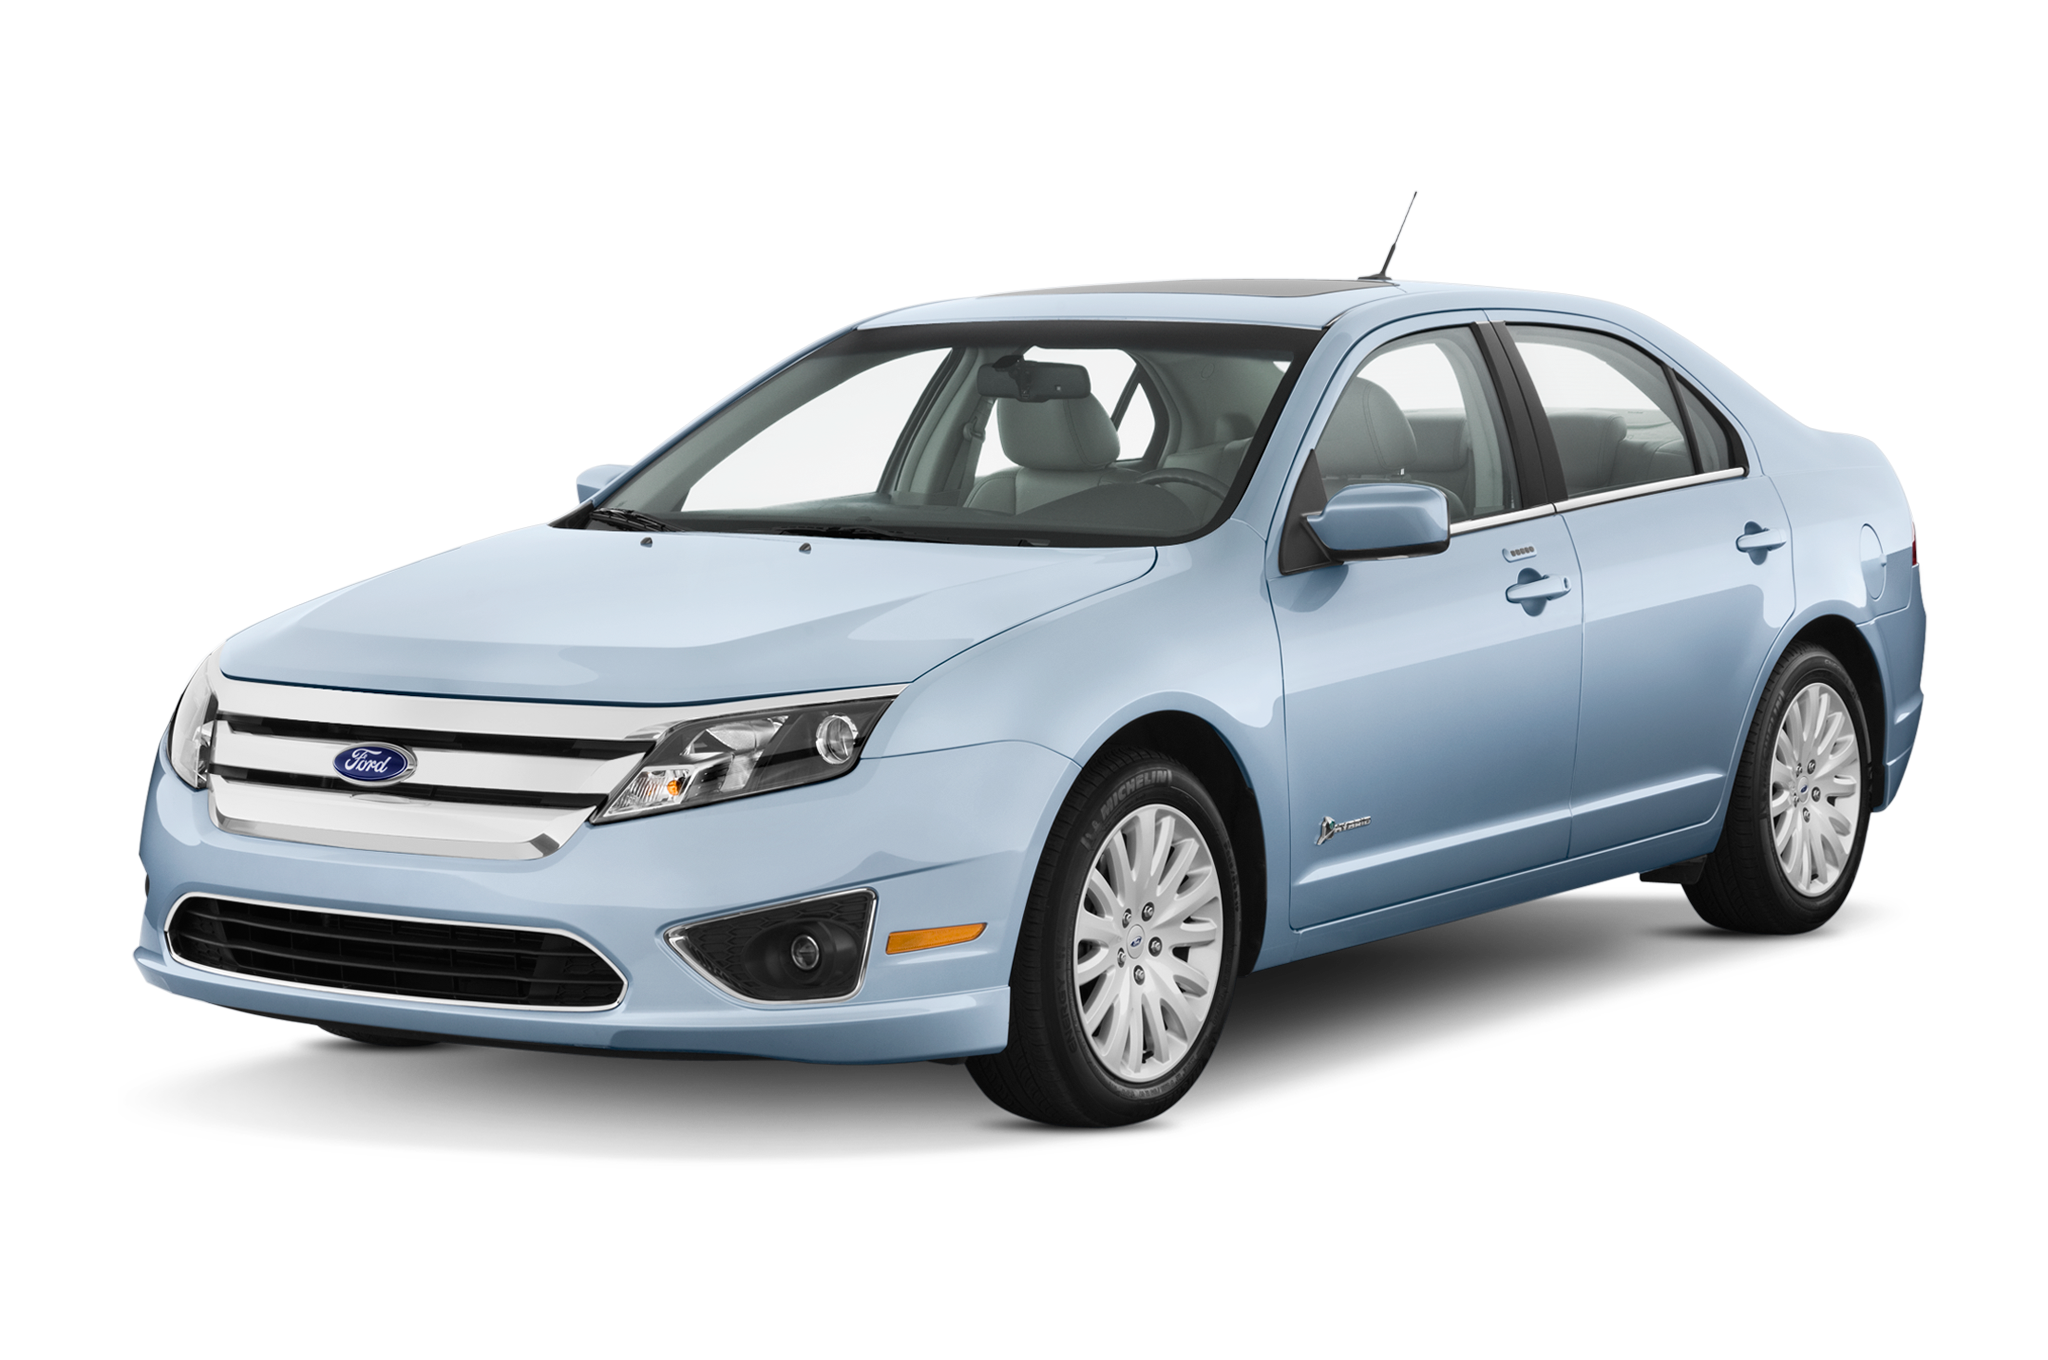 2012 Ford Fusion #13